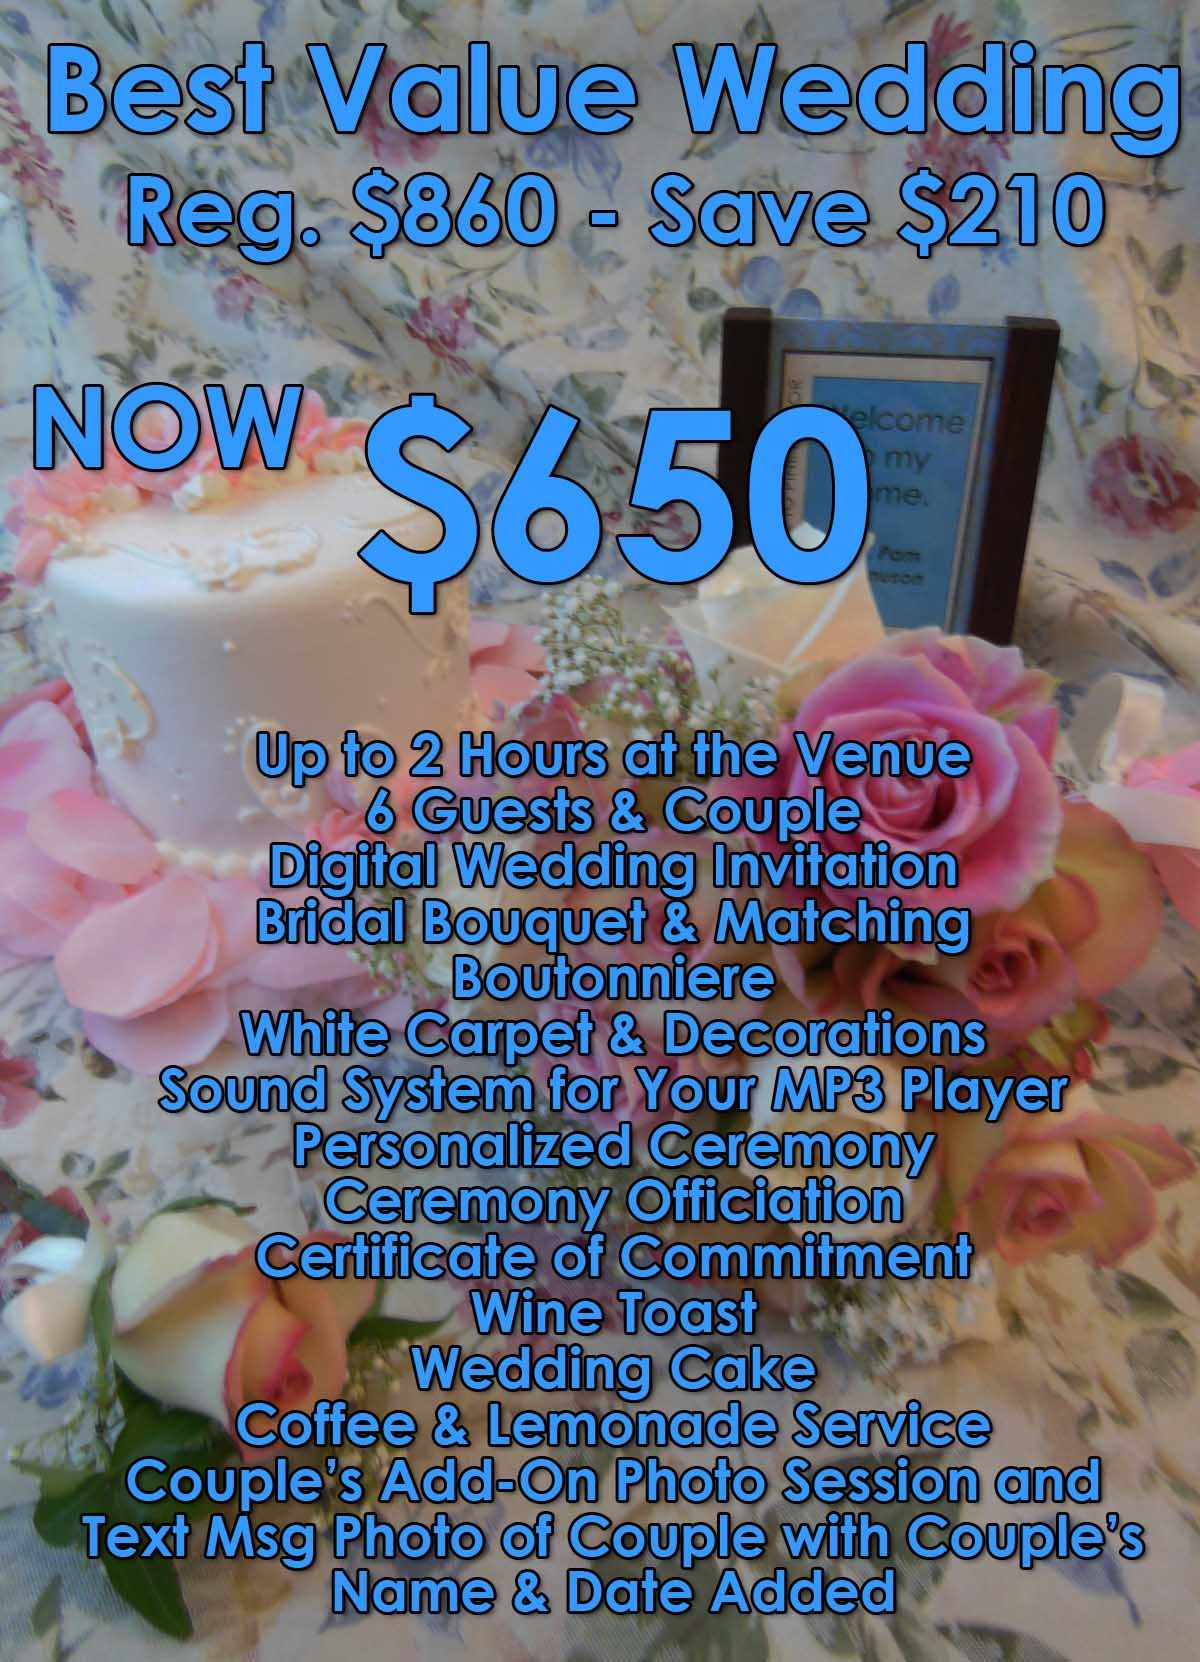 Best Value Wedding Packages Budget Wedding Ideas Small